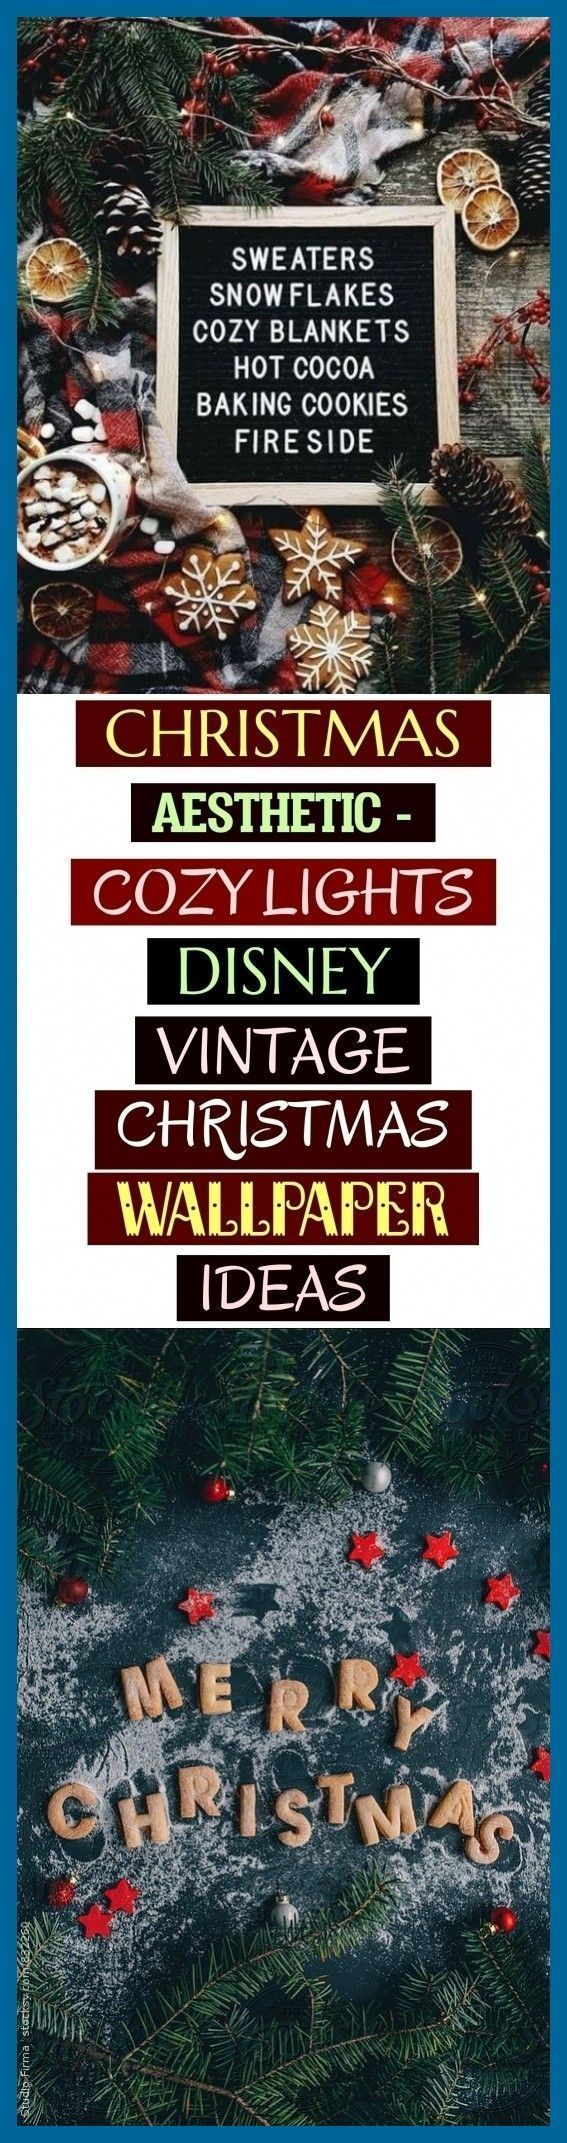 More than 25  Christmas Aesthetic - Cozy Lights Disney Vintage Christmas Wallpaper Ideas ~ Christmas Aesthetic - Cozy | Lights | Disney | Vintage Christmas Wallpaper Ideas. Looking for inspiration and a great mood with Christmas aesthetic ideas? Save my collection of these Christmas lights aesthetic, wallpaper and sweater ideas. #christmas #xmas #aesthetic #photography #winter #homedecor #cozy #christmastree ~ #christmas #xmas #aesthetic #photogr #christmasaestheticwallpaper More than 25  Christ